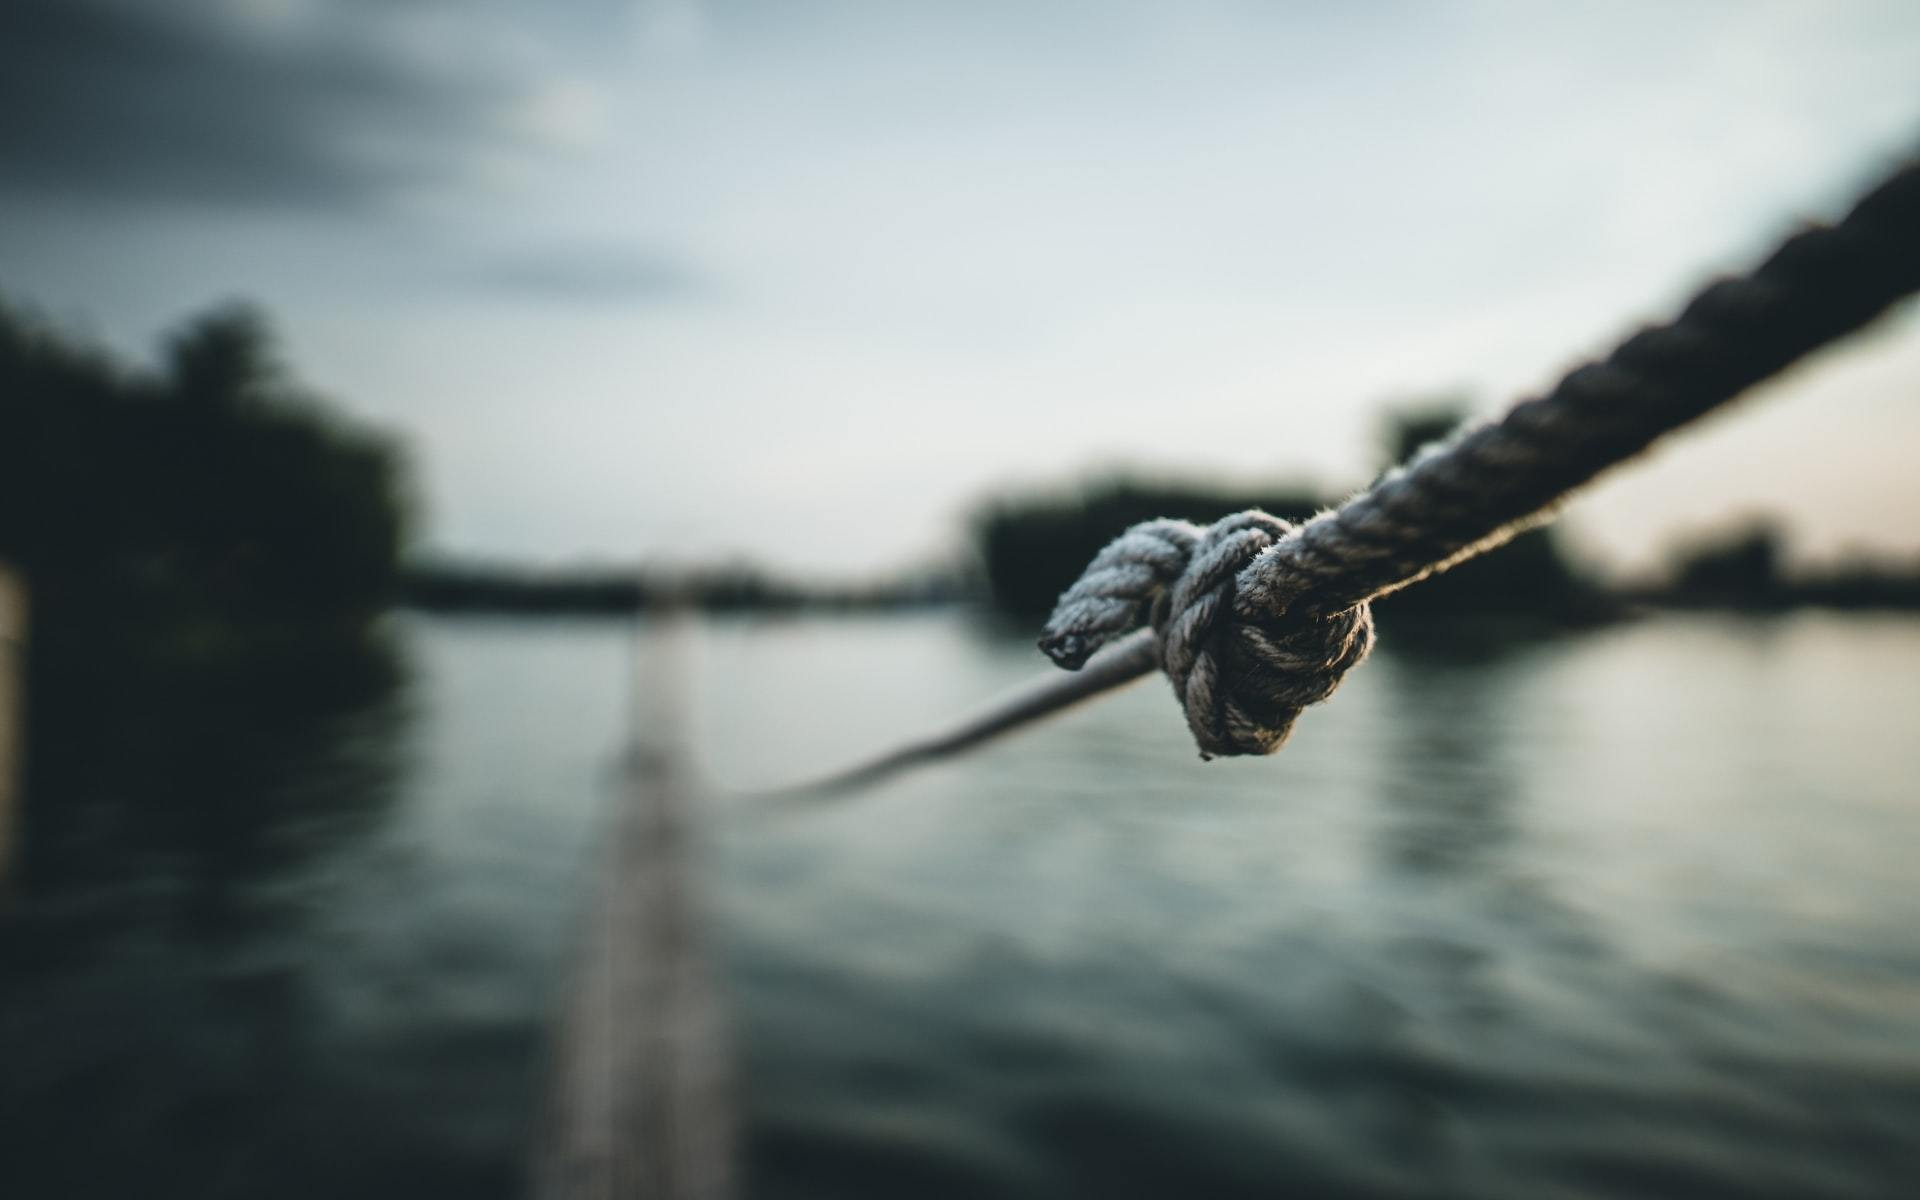 Knot Photo by Max Saeling on Unsplash